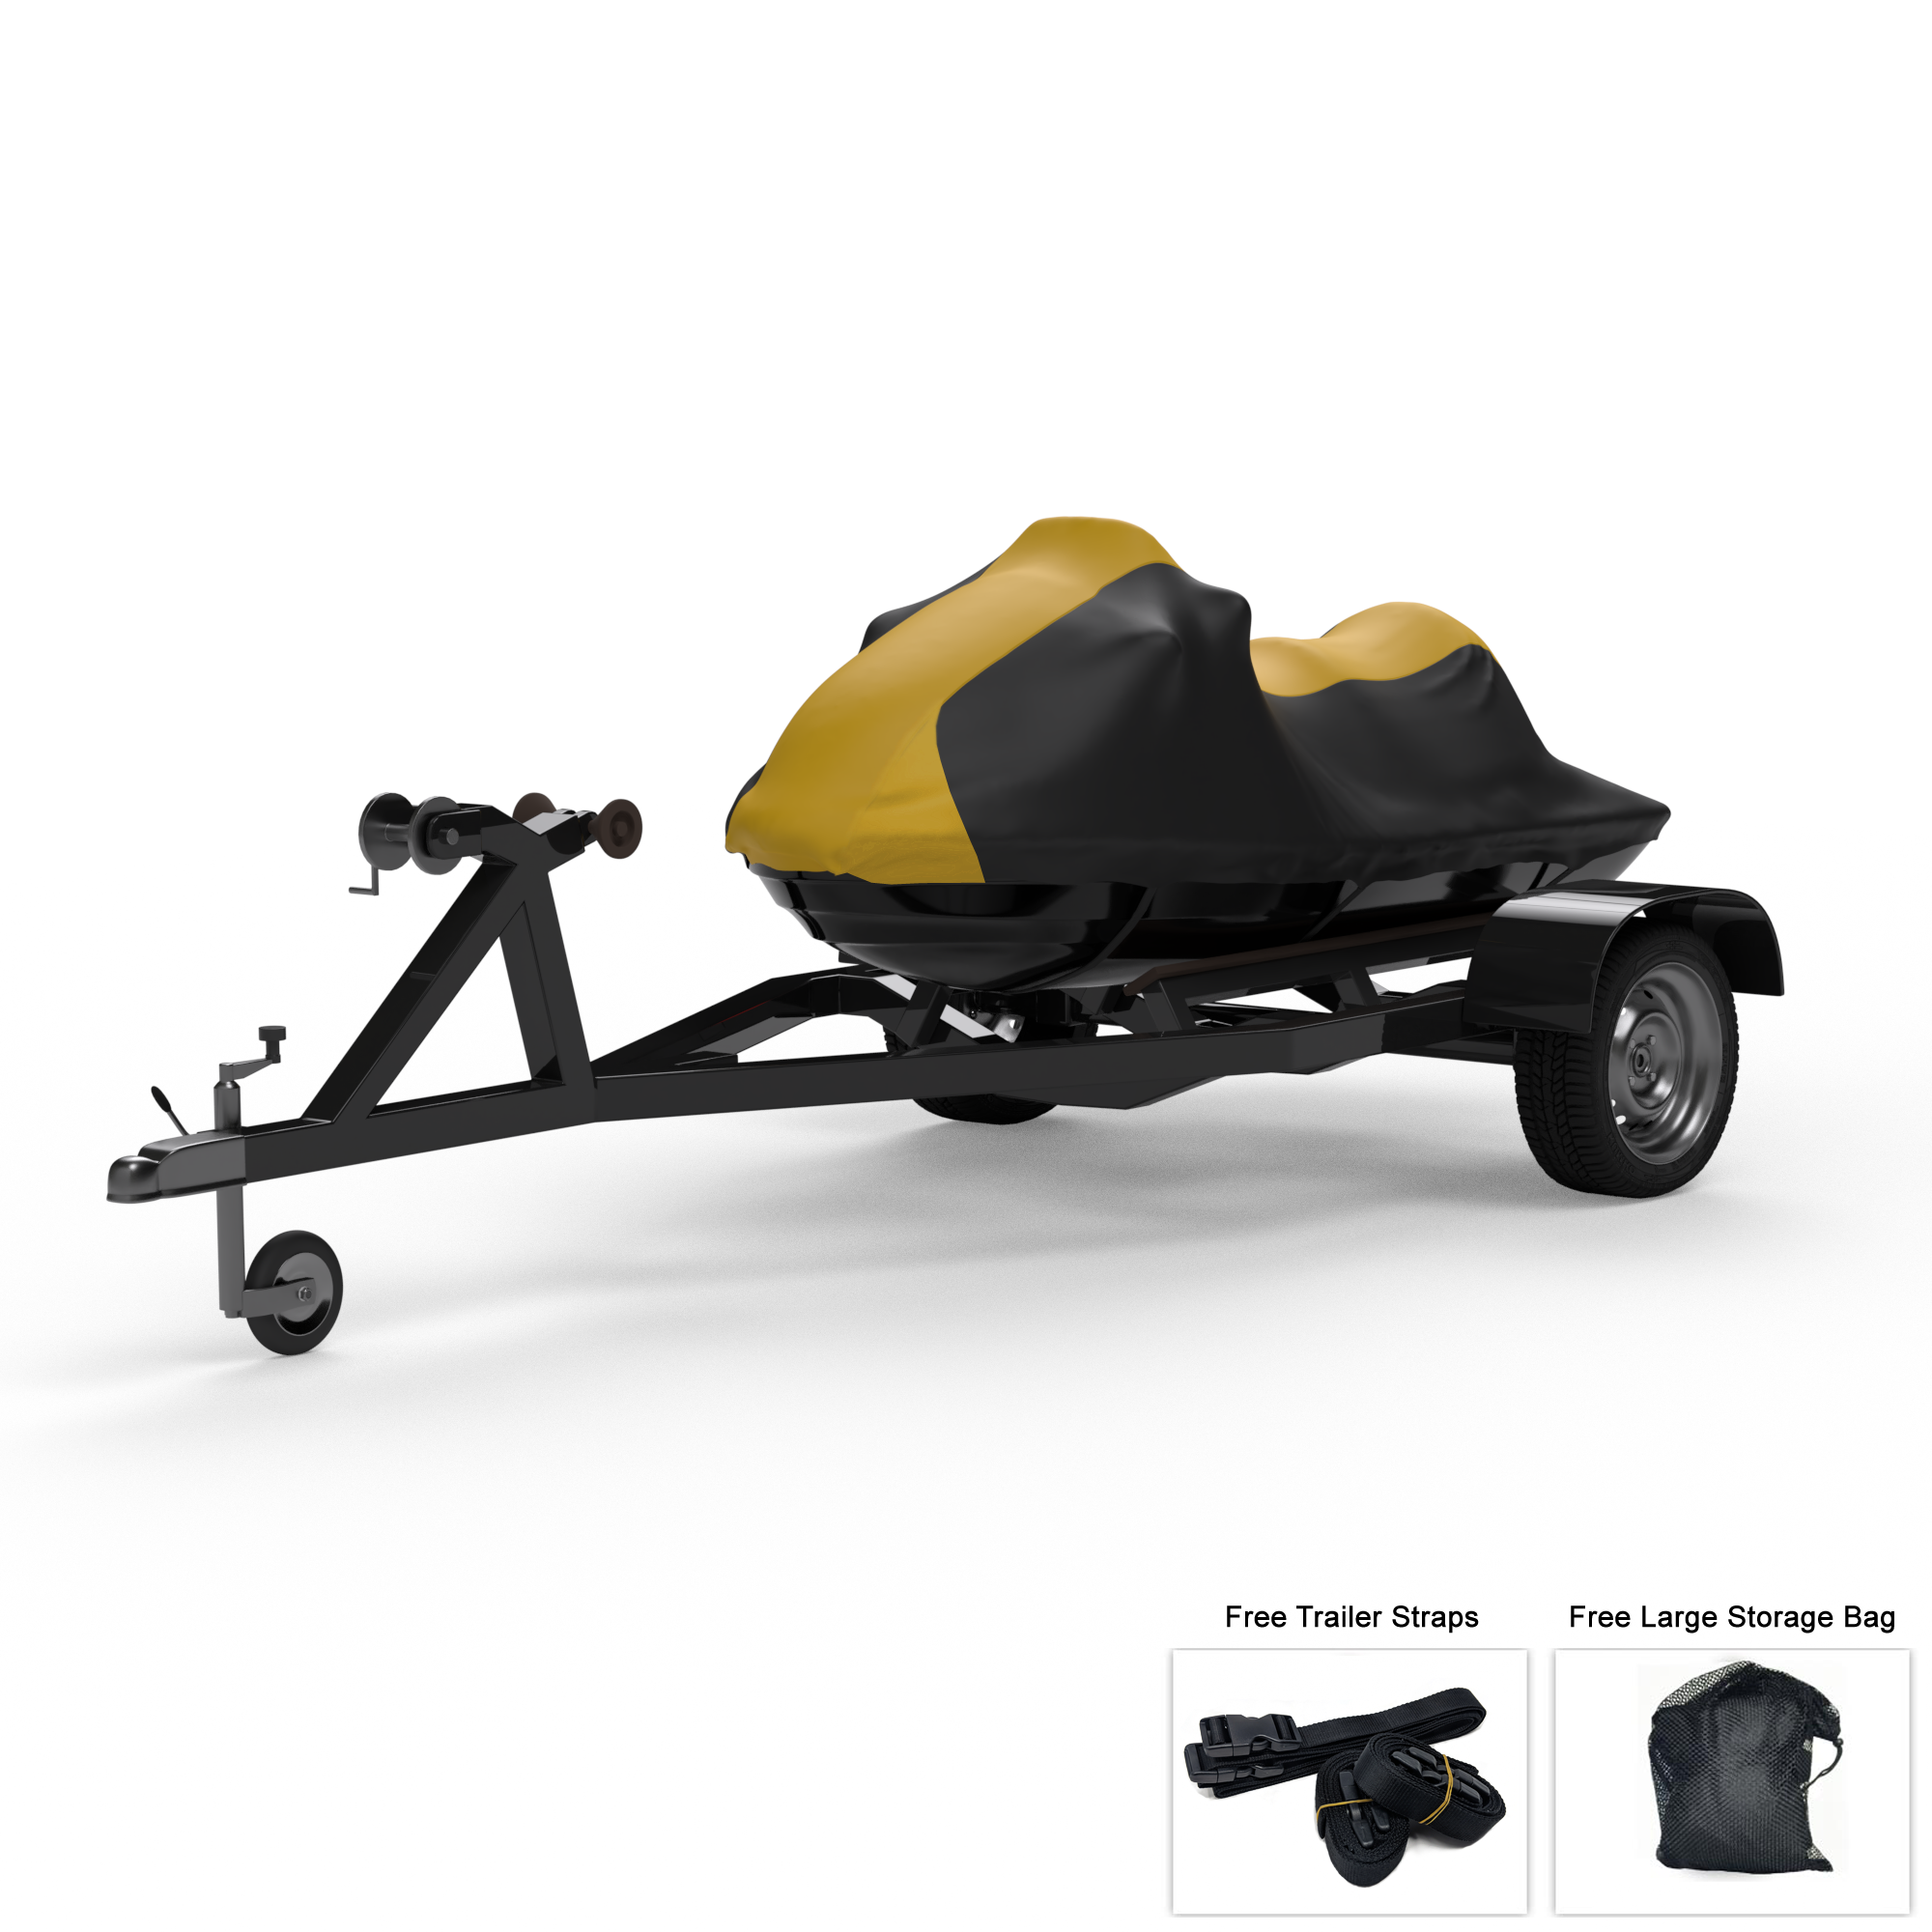 Weatherproof Jet Ski Cover For YAMAHA Wave Runner VX Cruiser HO 2015-2018 - GRAY / Black Color - All Weather - Trailerable - Protects from Rain, Sun, And More! Includes Trailer Straps And Storage Bag